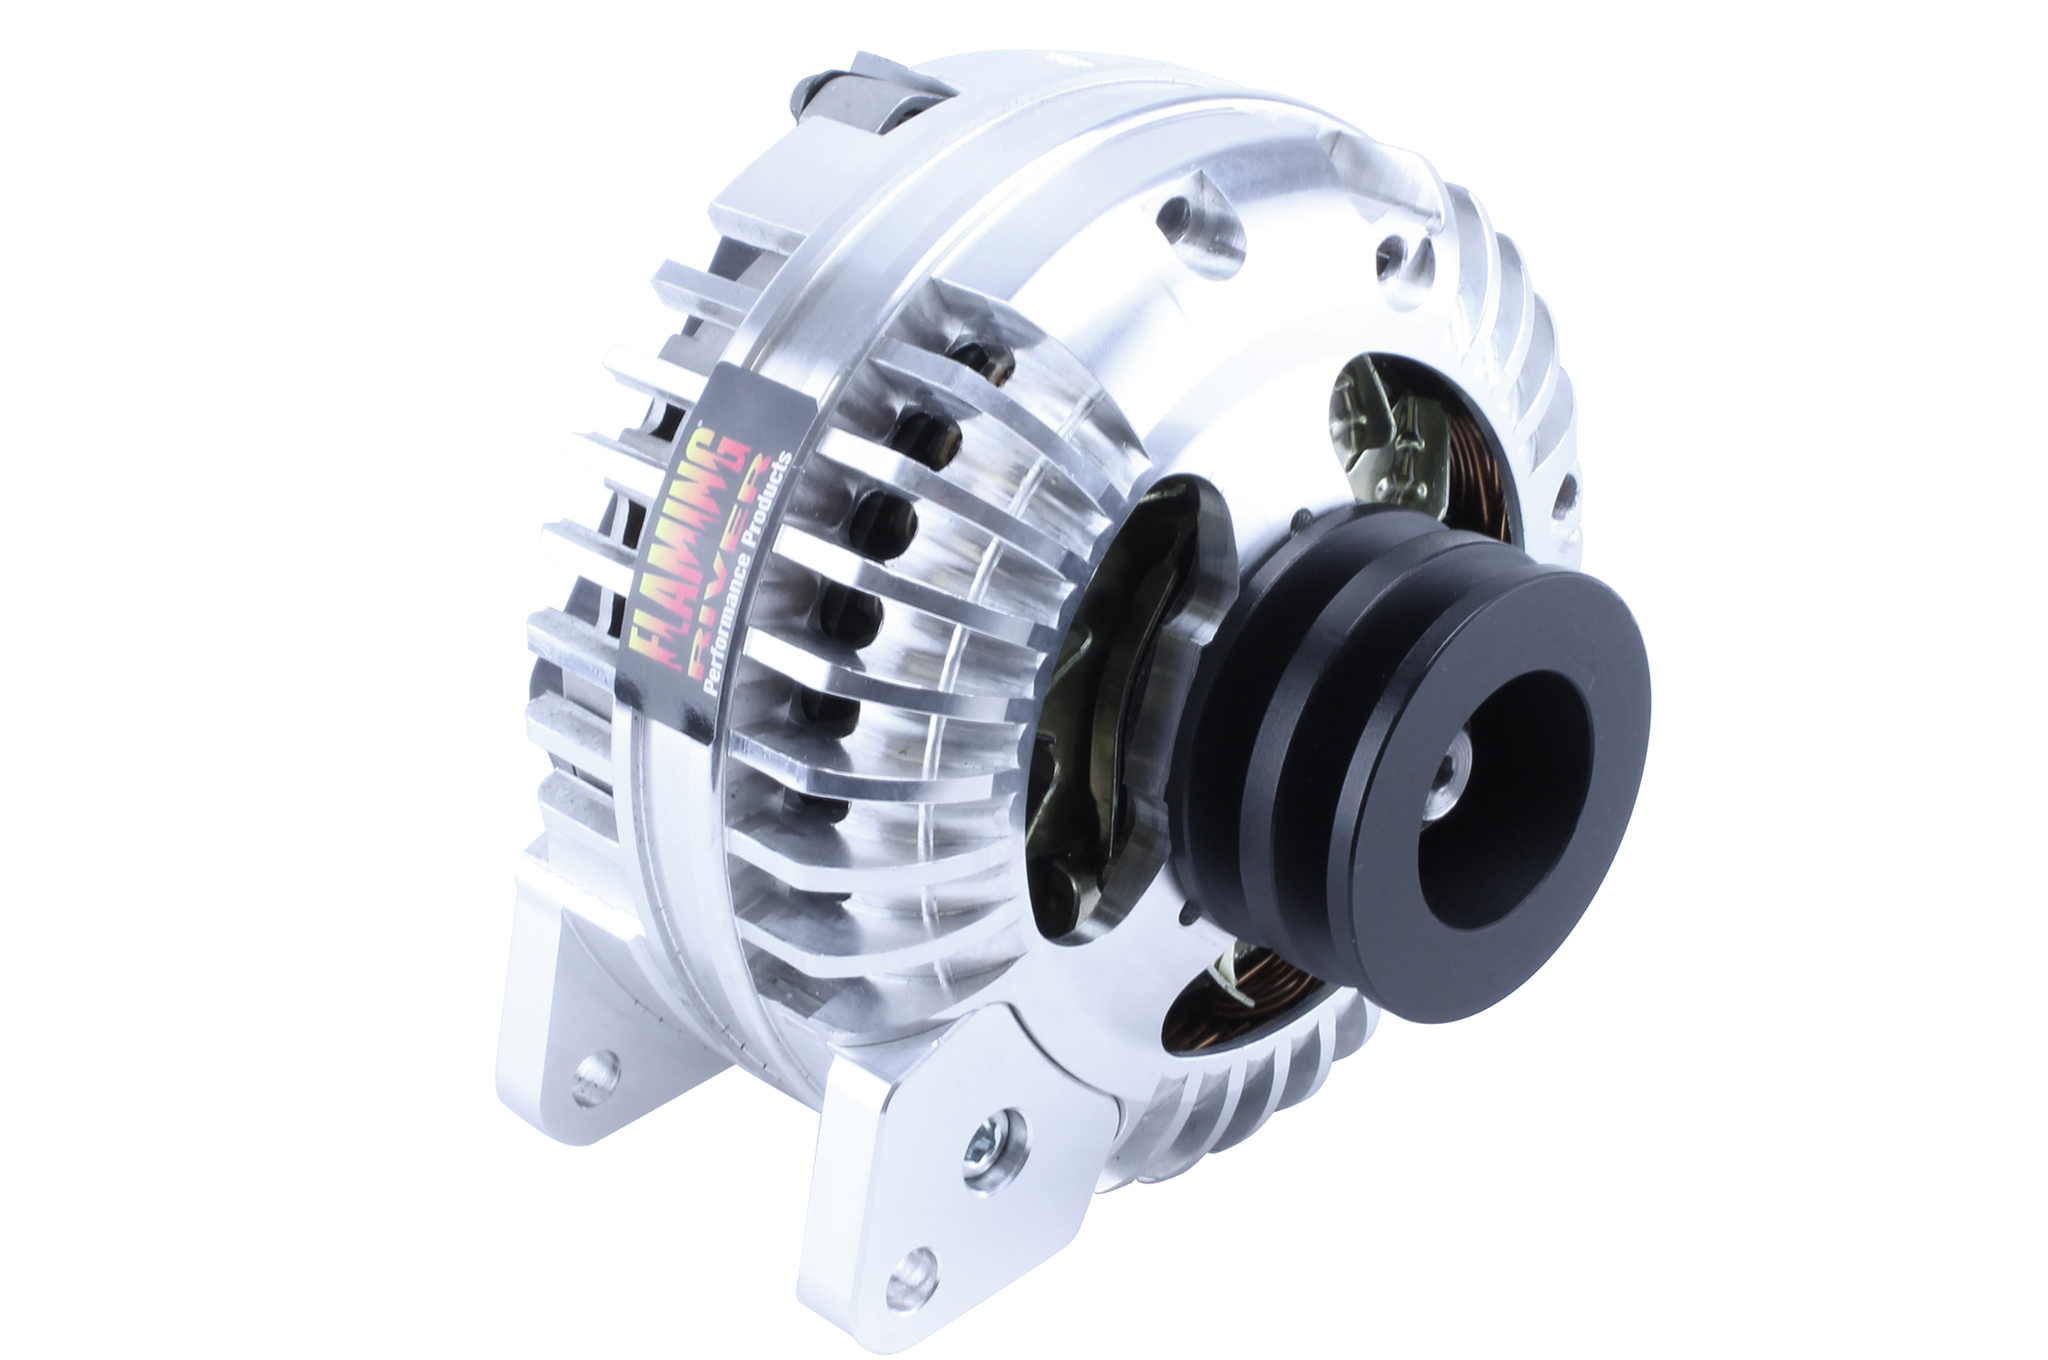 Muscle car Mopar fans and Street Cruiser enthusiasts will benefit from Flaming River's newest alternator.